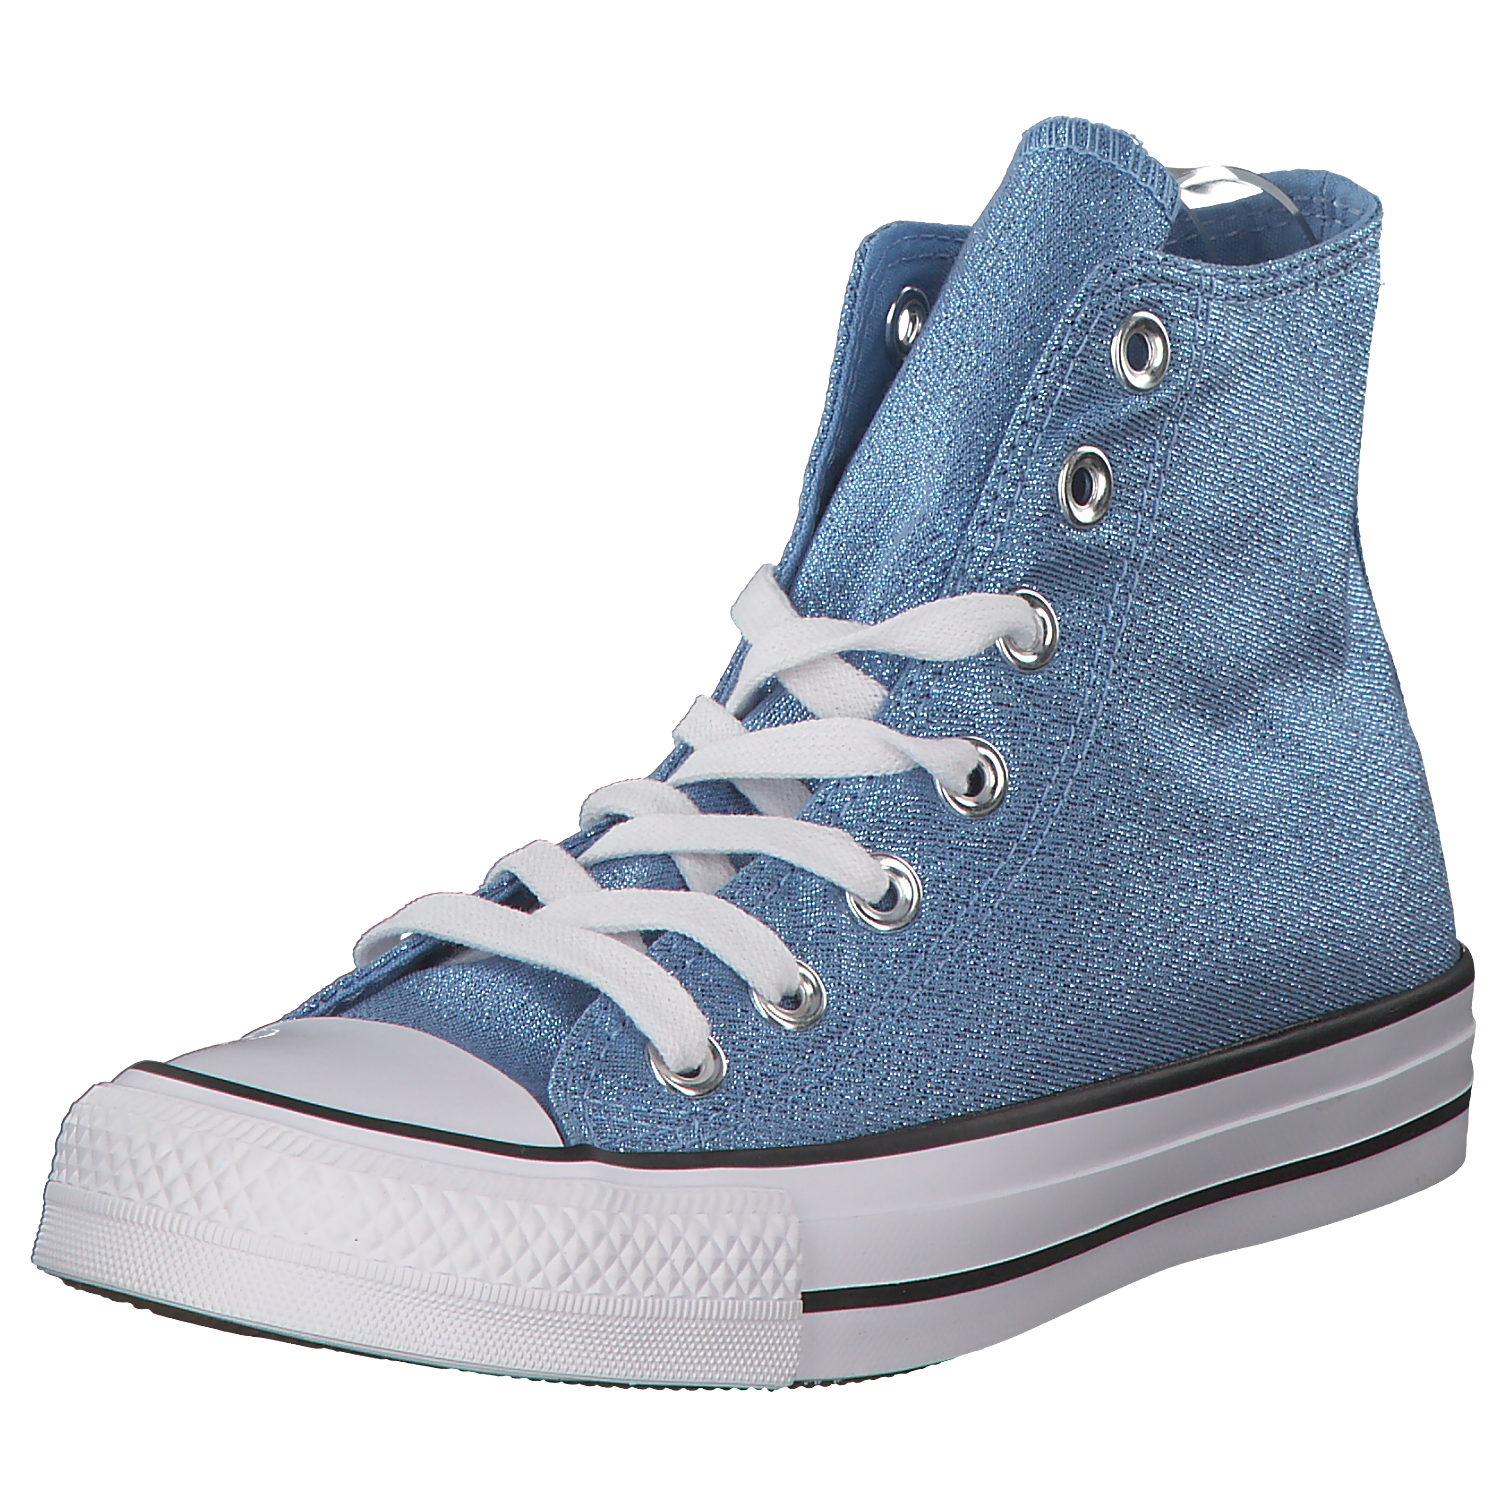 huge selection of 4b21e 69c91 Details zu Converse All Star Damen Sneaker Sneaker High Turnschuhe 561707c  Blau/glitzer Neu